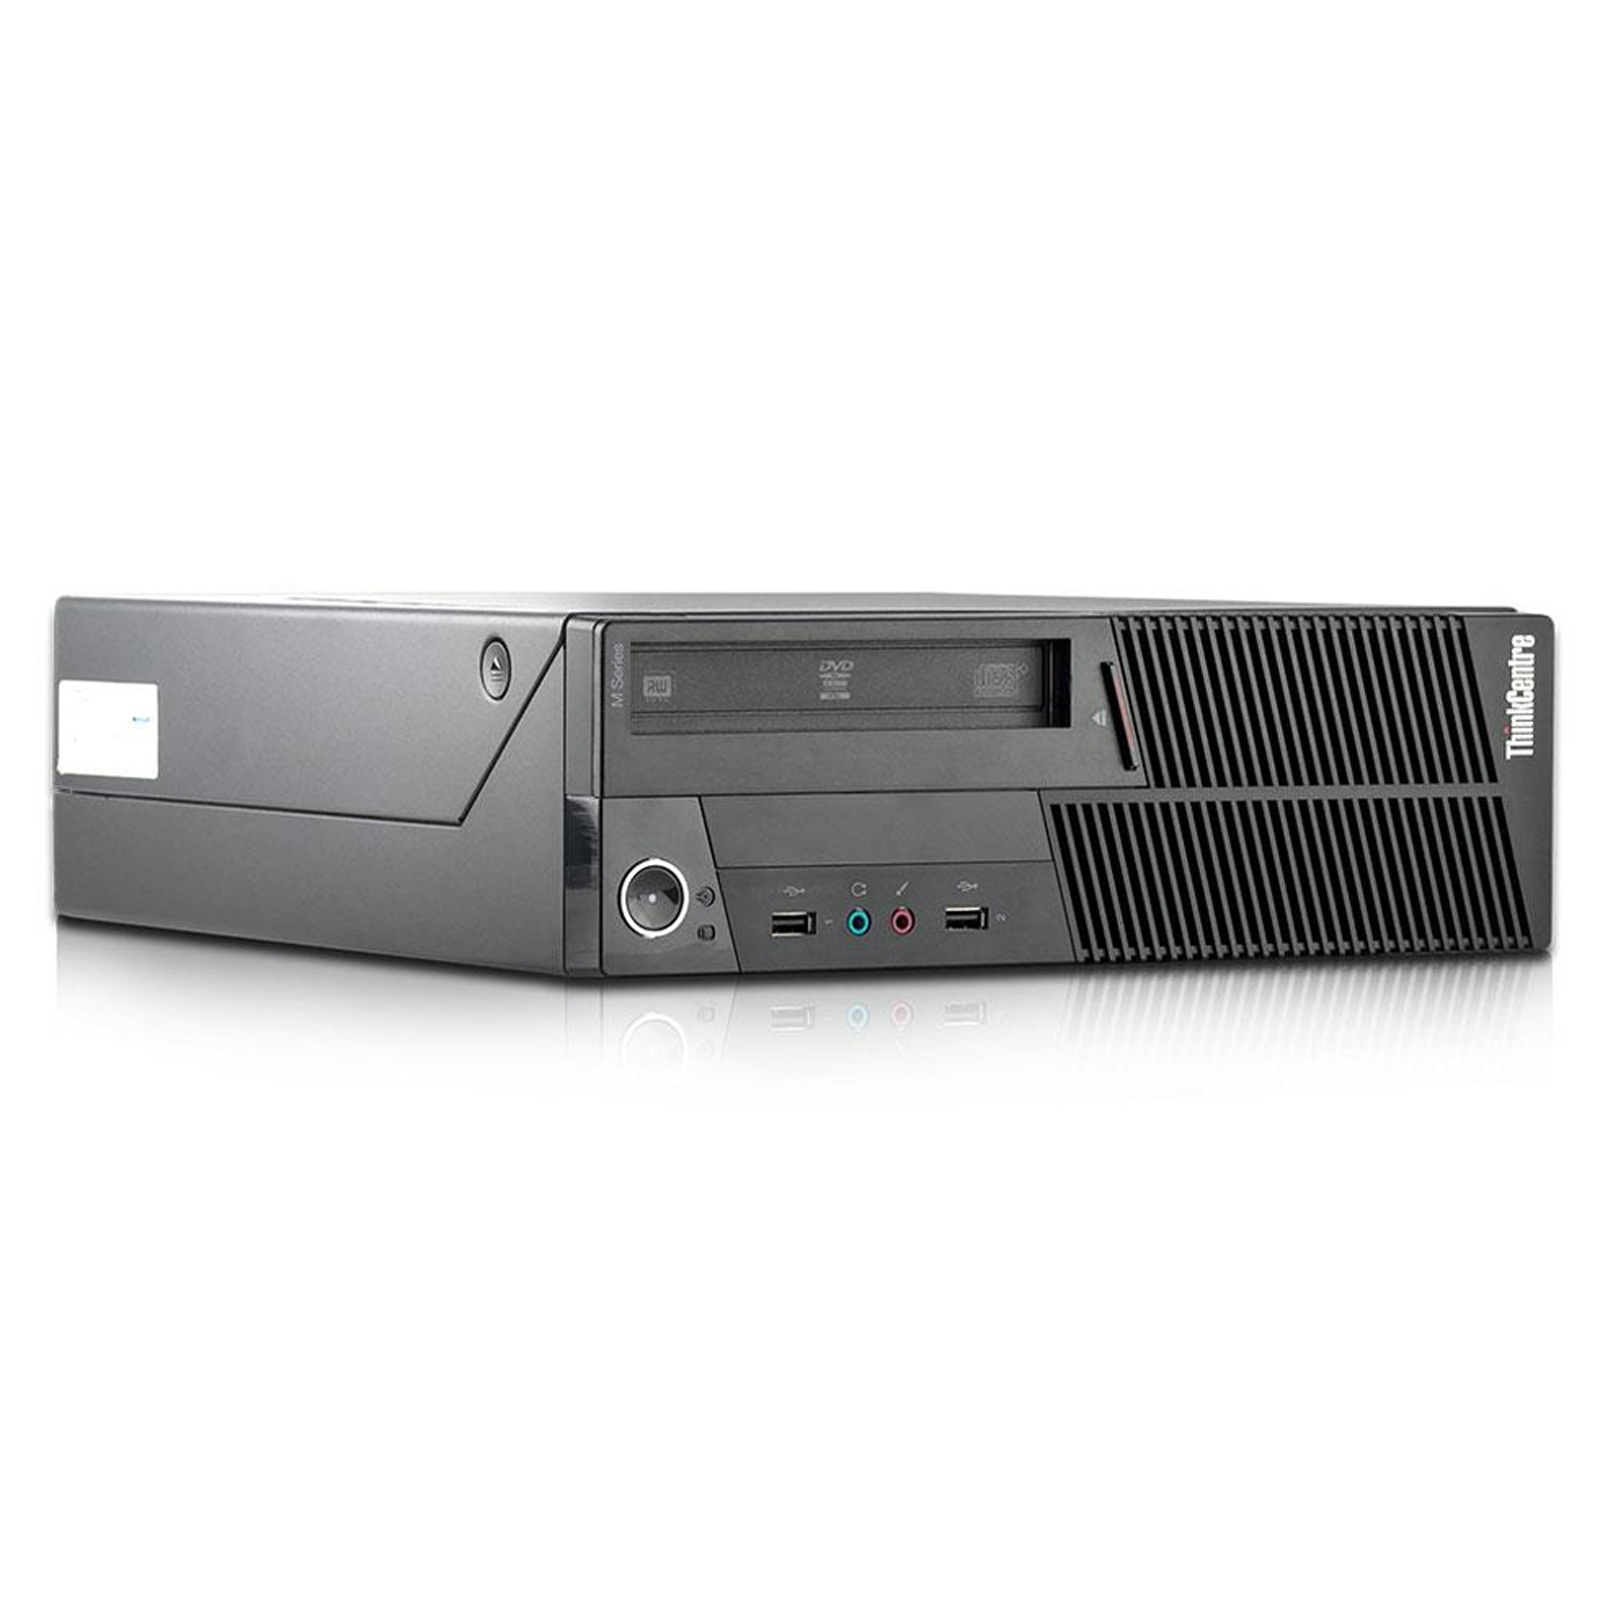 Click here to buy Refurbished ThinkCentre Lenovo M90p Business Desktop Computer Intel Core i5-650 3.2GHz, 8GB RAM, 1TB HDD, Windows 7... by Lenovo.